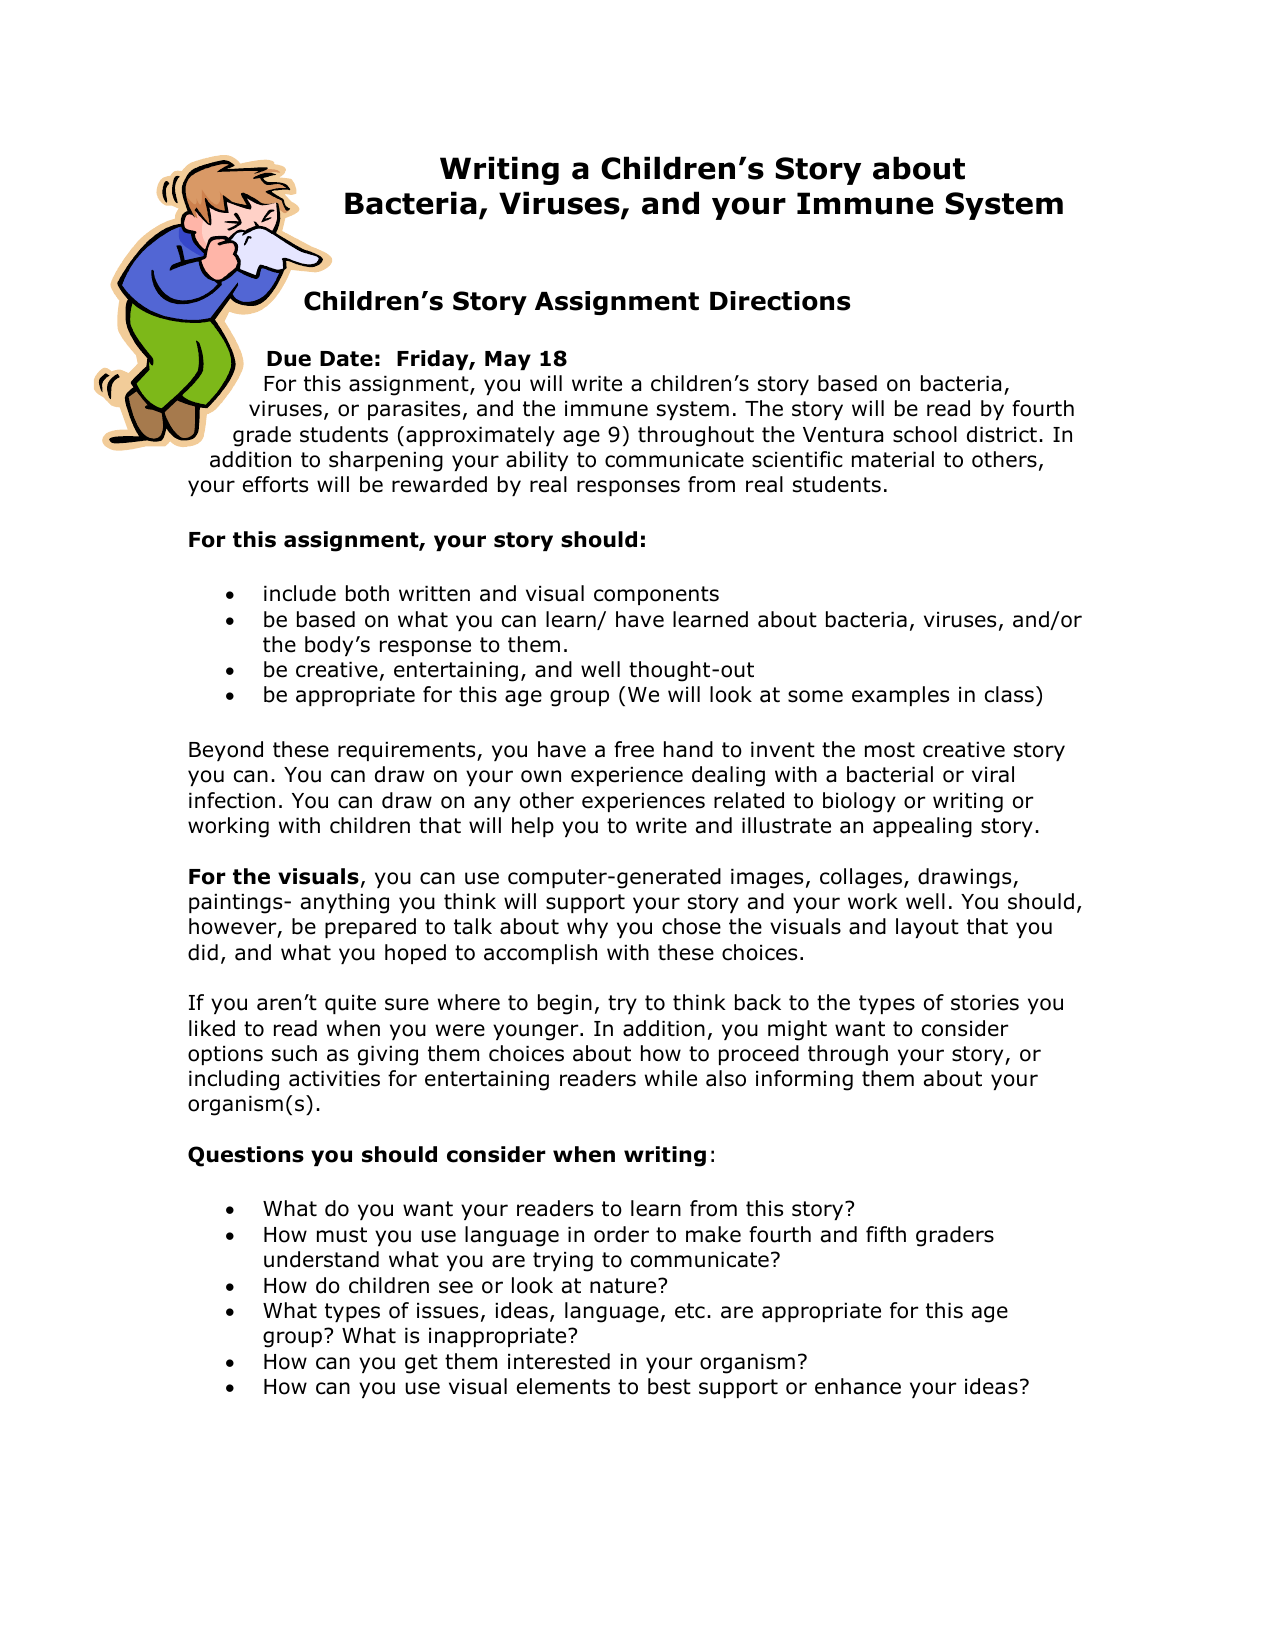 Writing a Children`s Story about Bacteria and Viruses